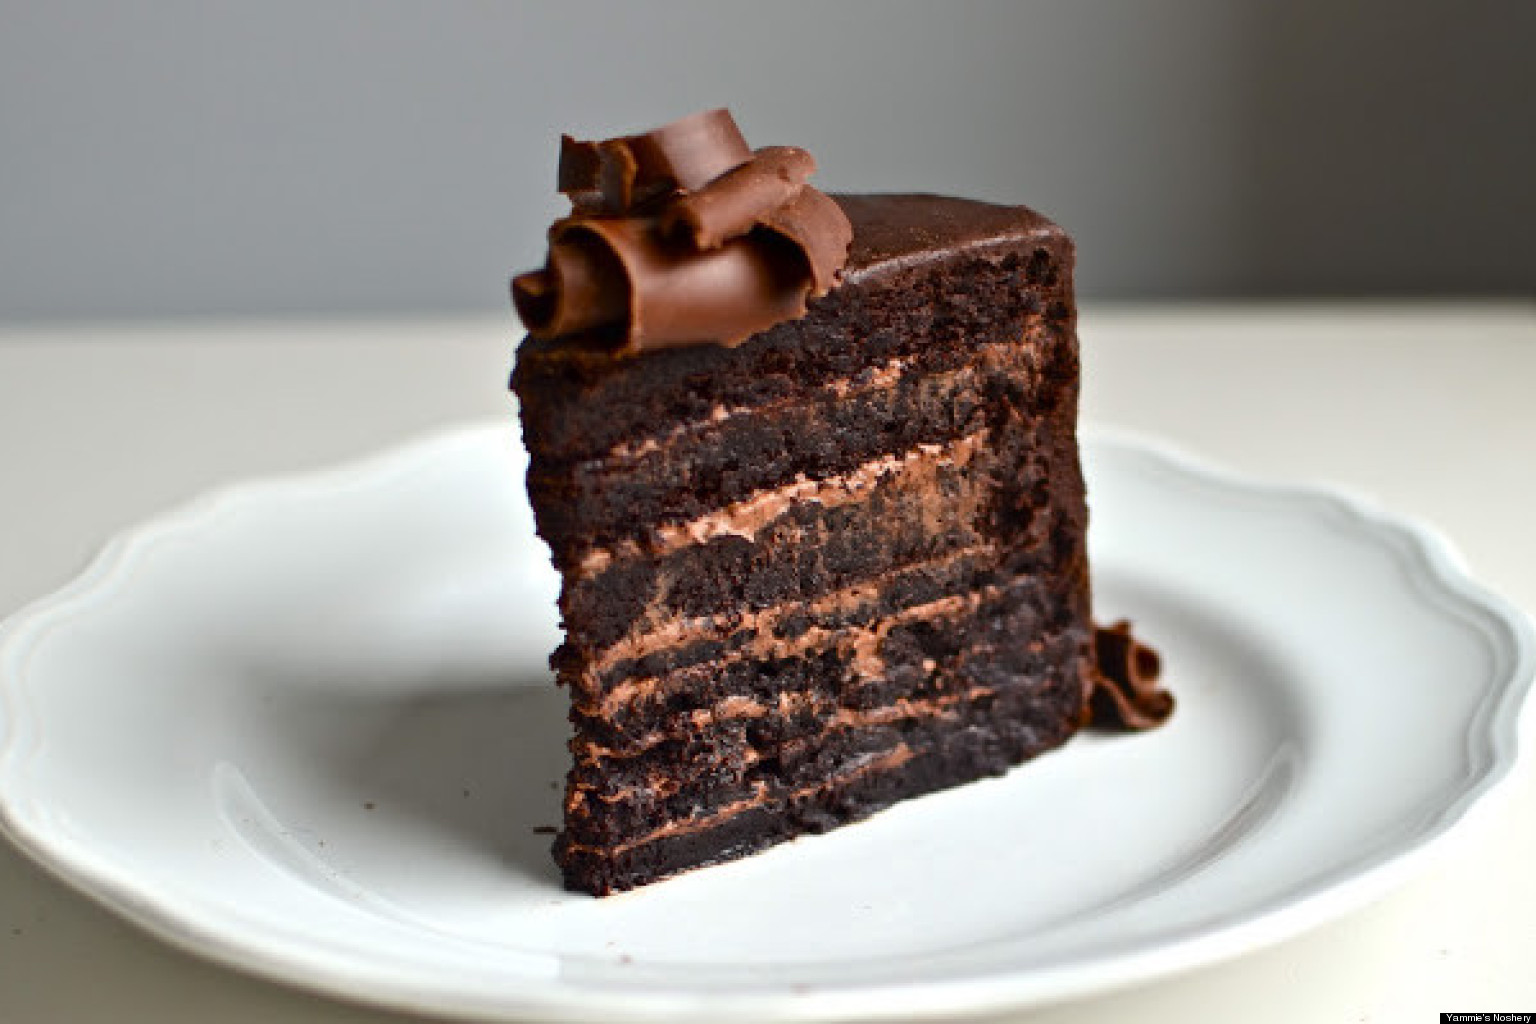 Cake Recipes In Pictures: The 100 All-Time Best Chocolate Recipes (PHOTOS)